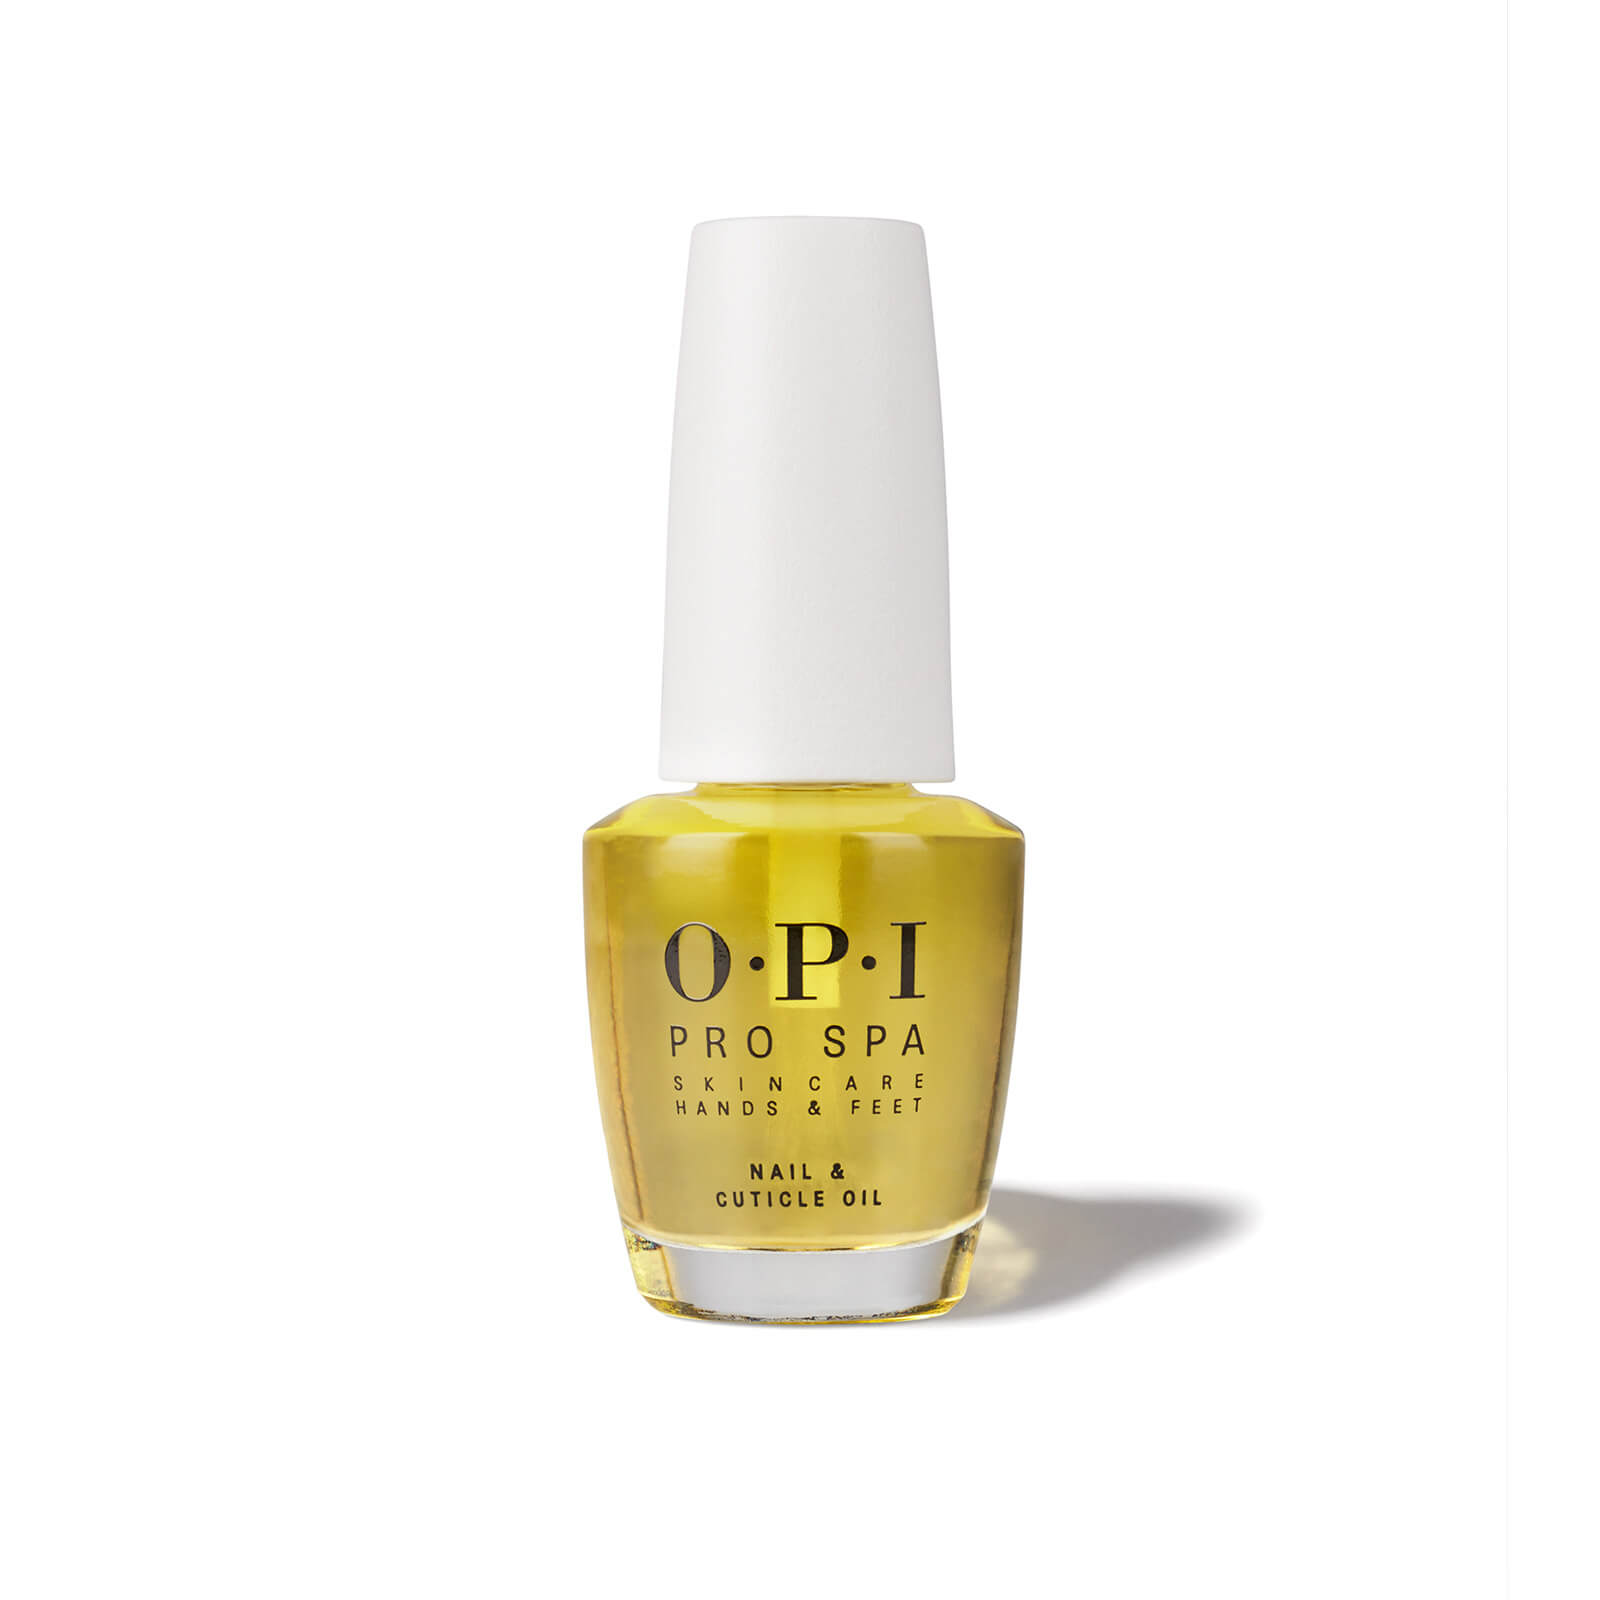 OPI Prospa Nail and Cuticle Oil (Various Sizes) - 8.6ml